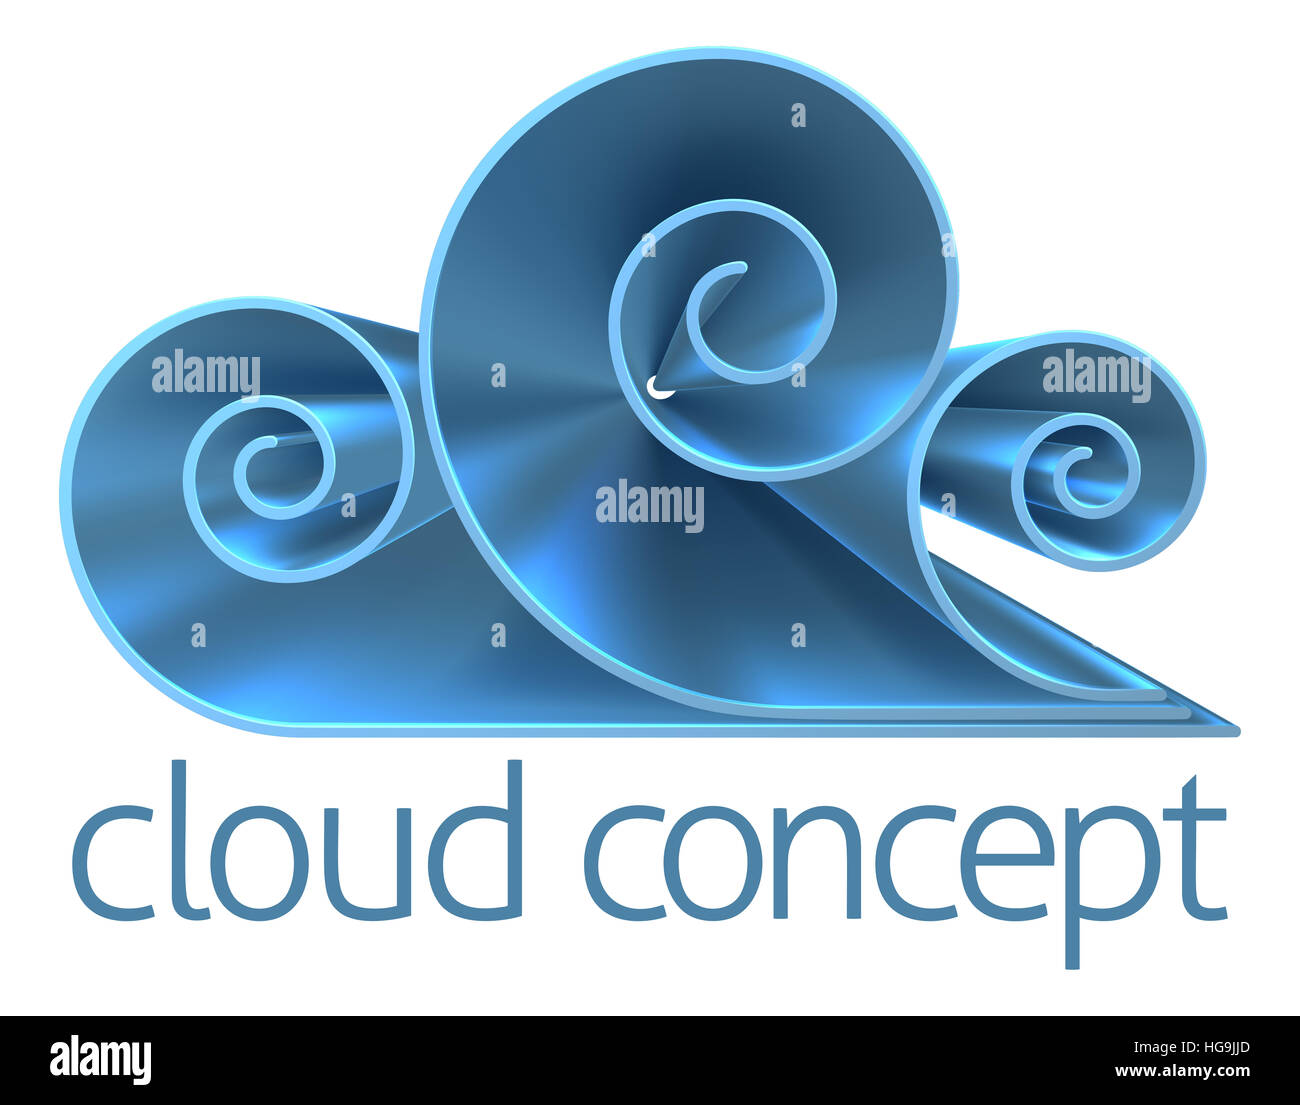 A cloud icon internet concept design element - Stock Image